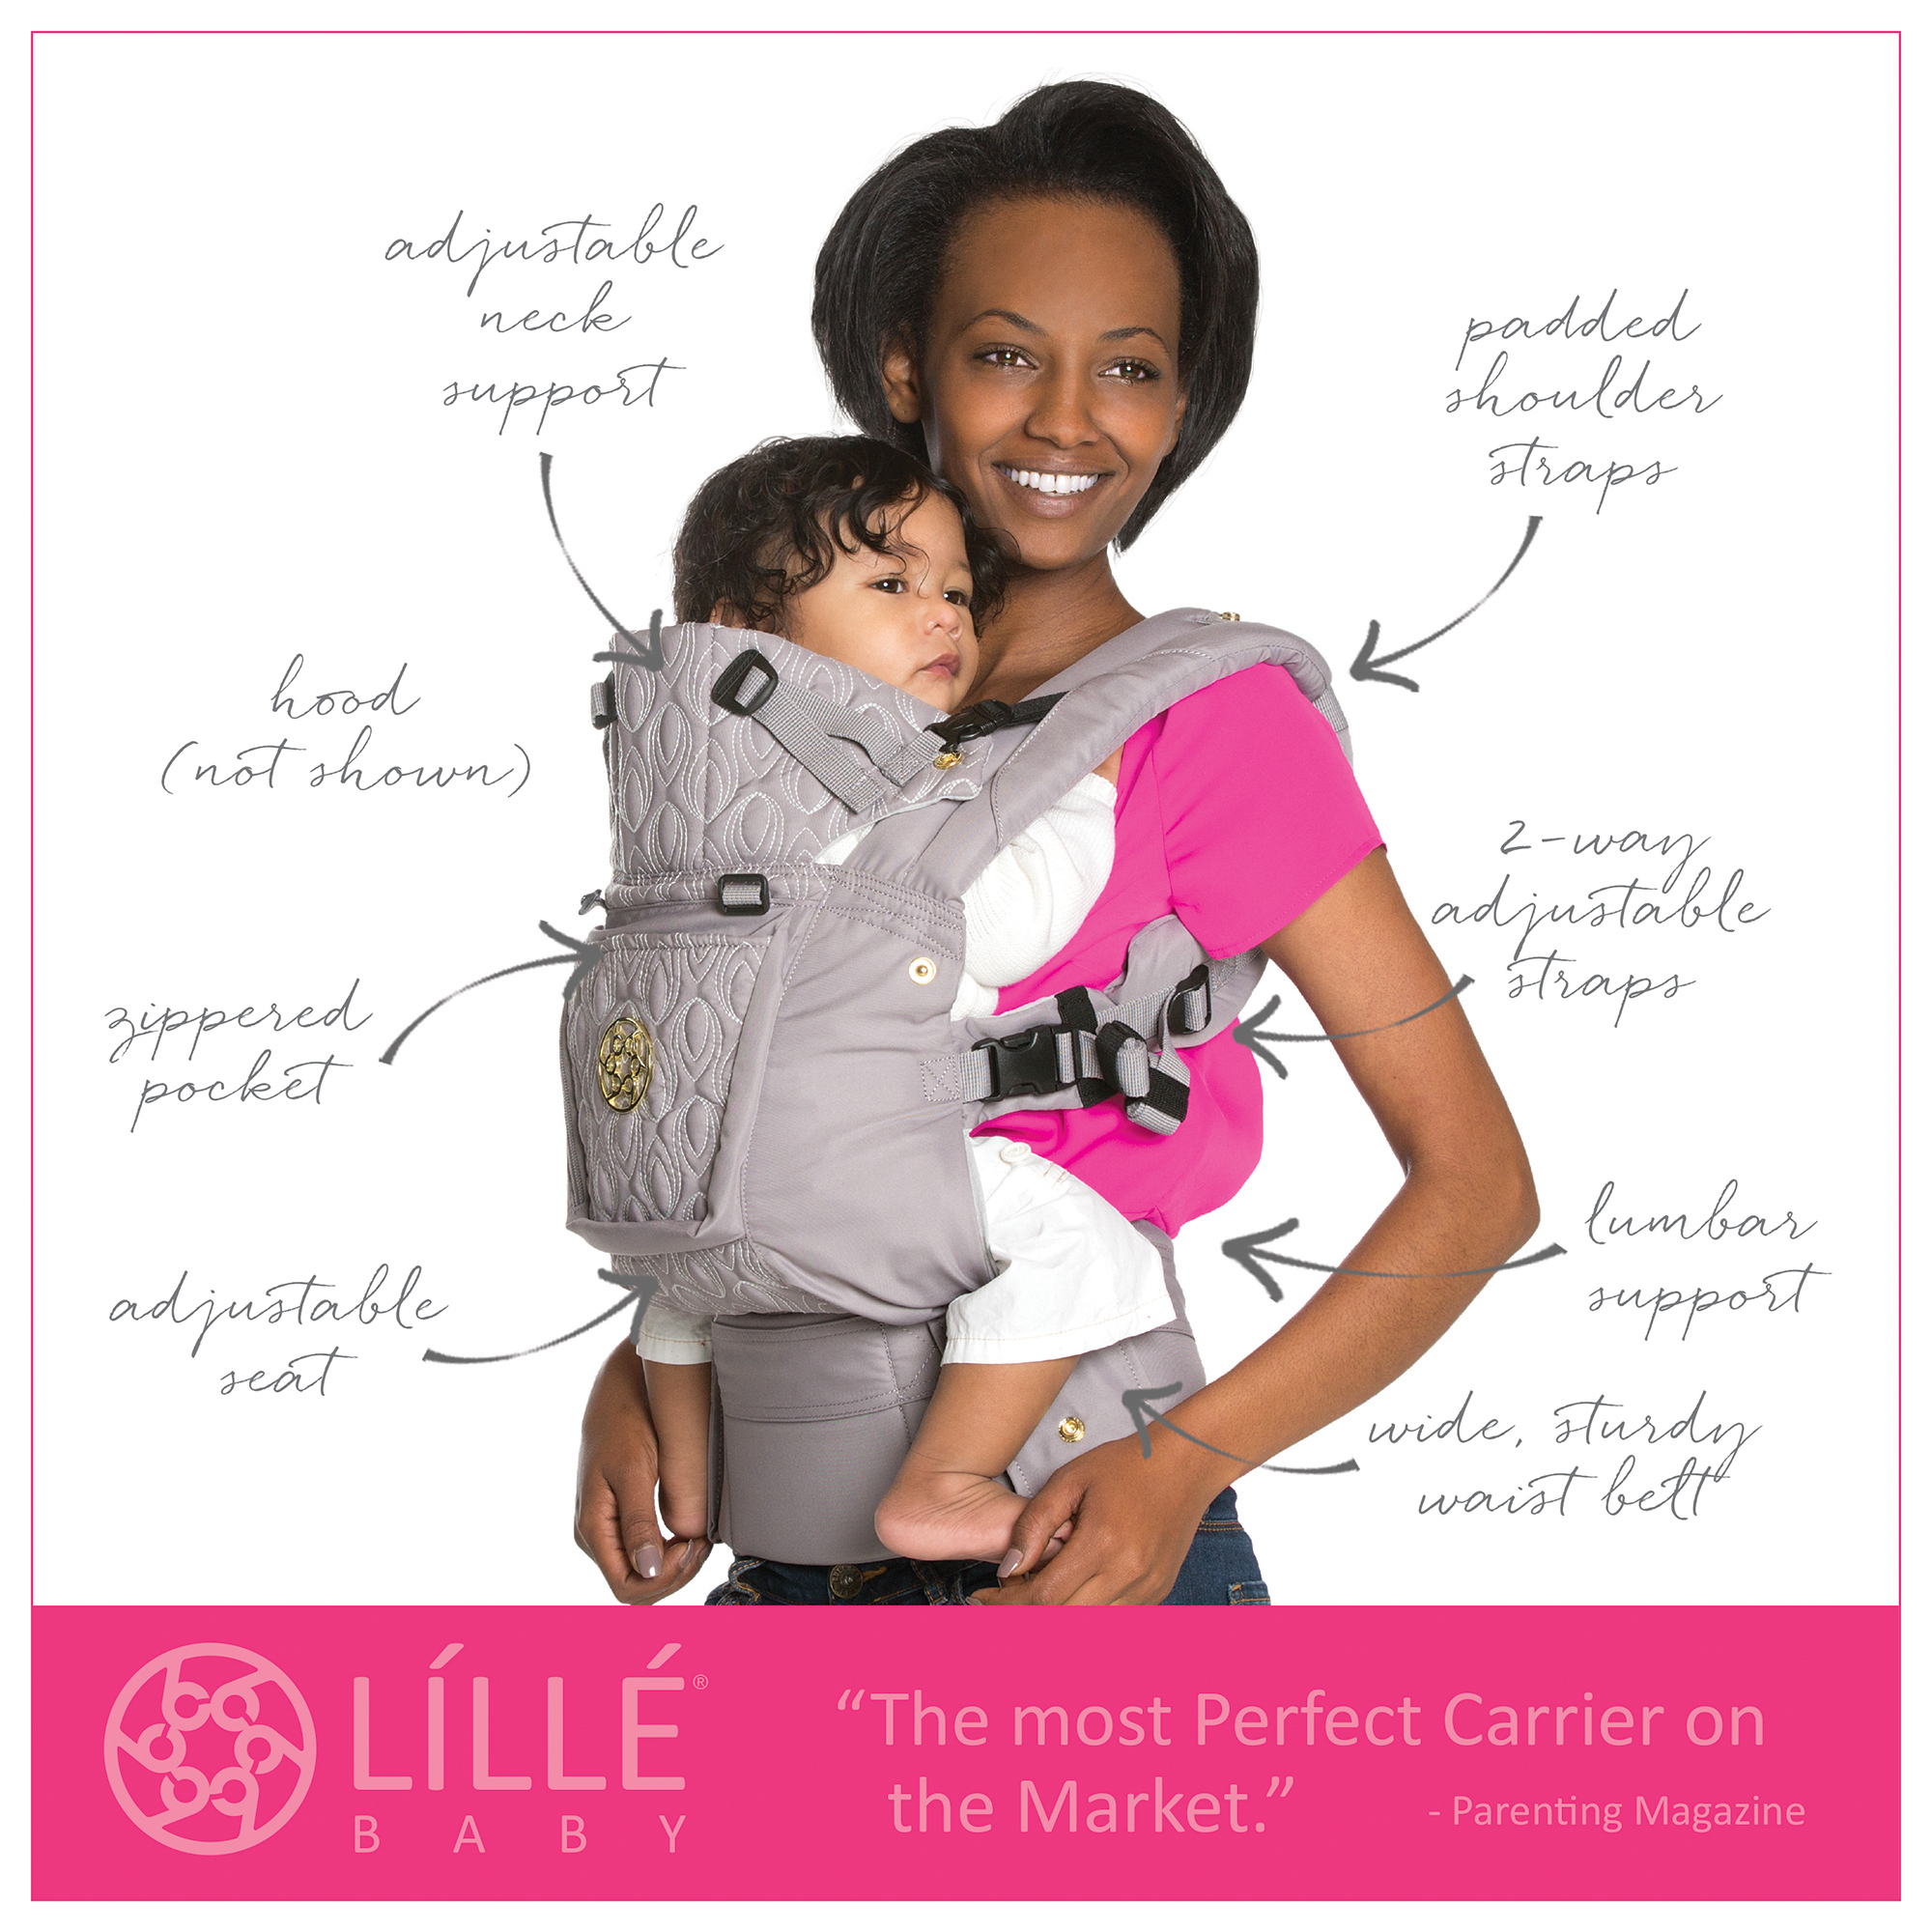 lillebaby-complete-embossed-baby-carrier-pewter-features.jpg